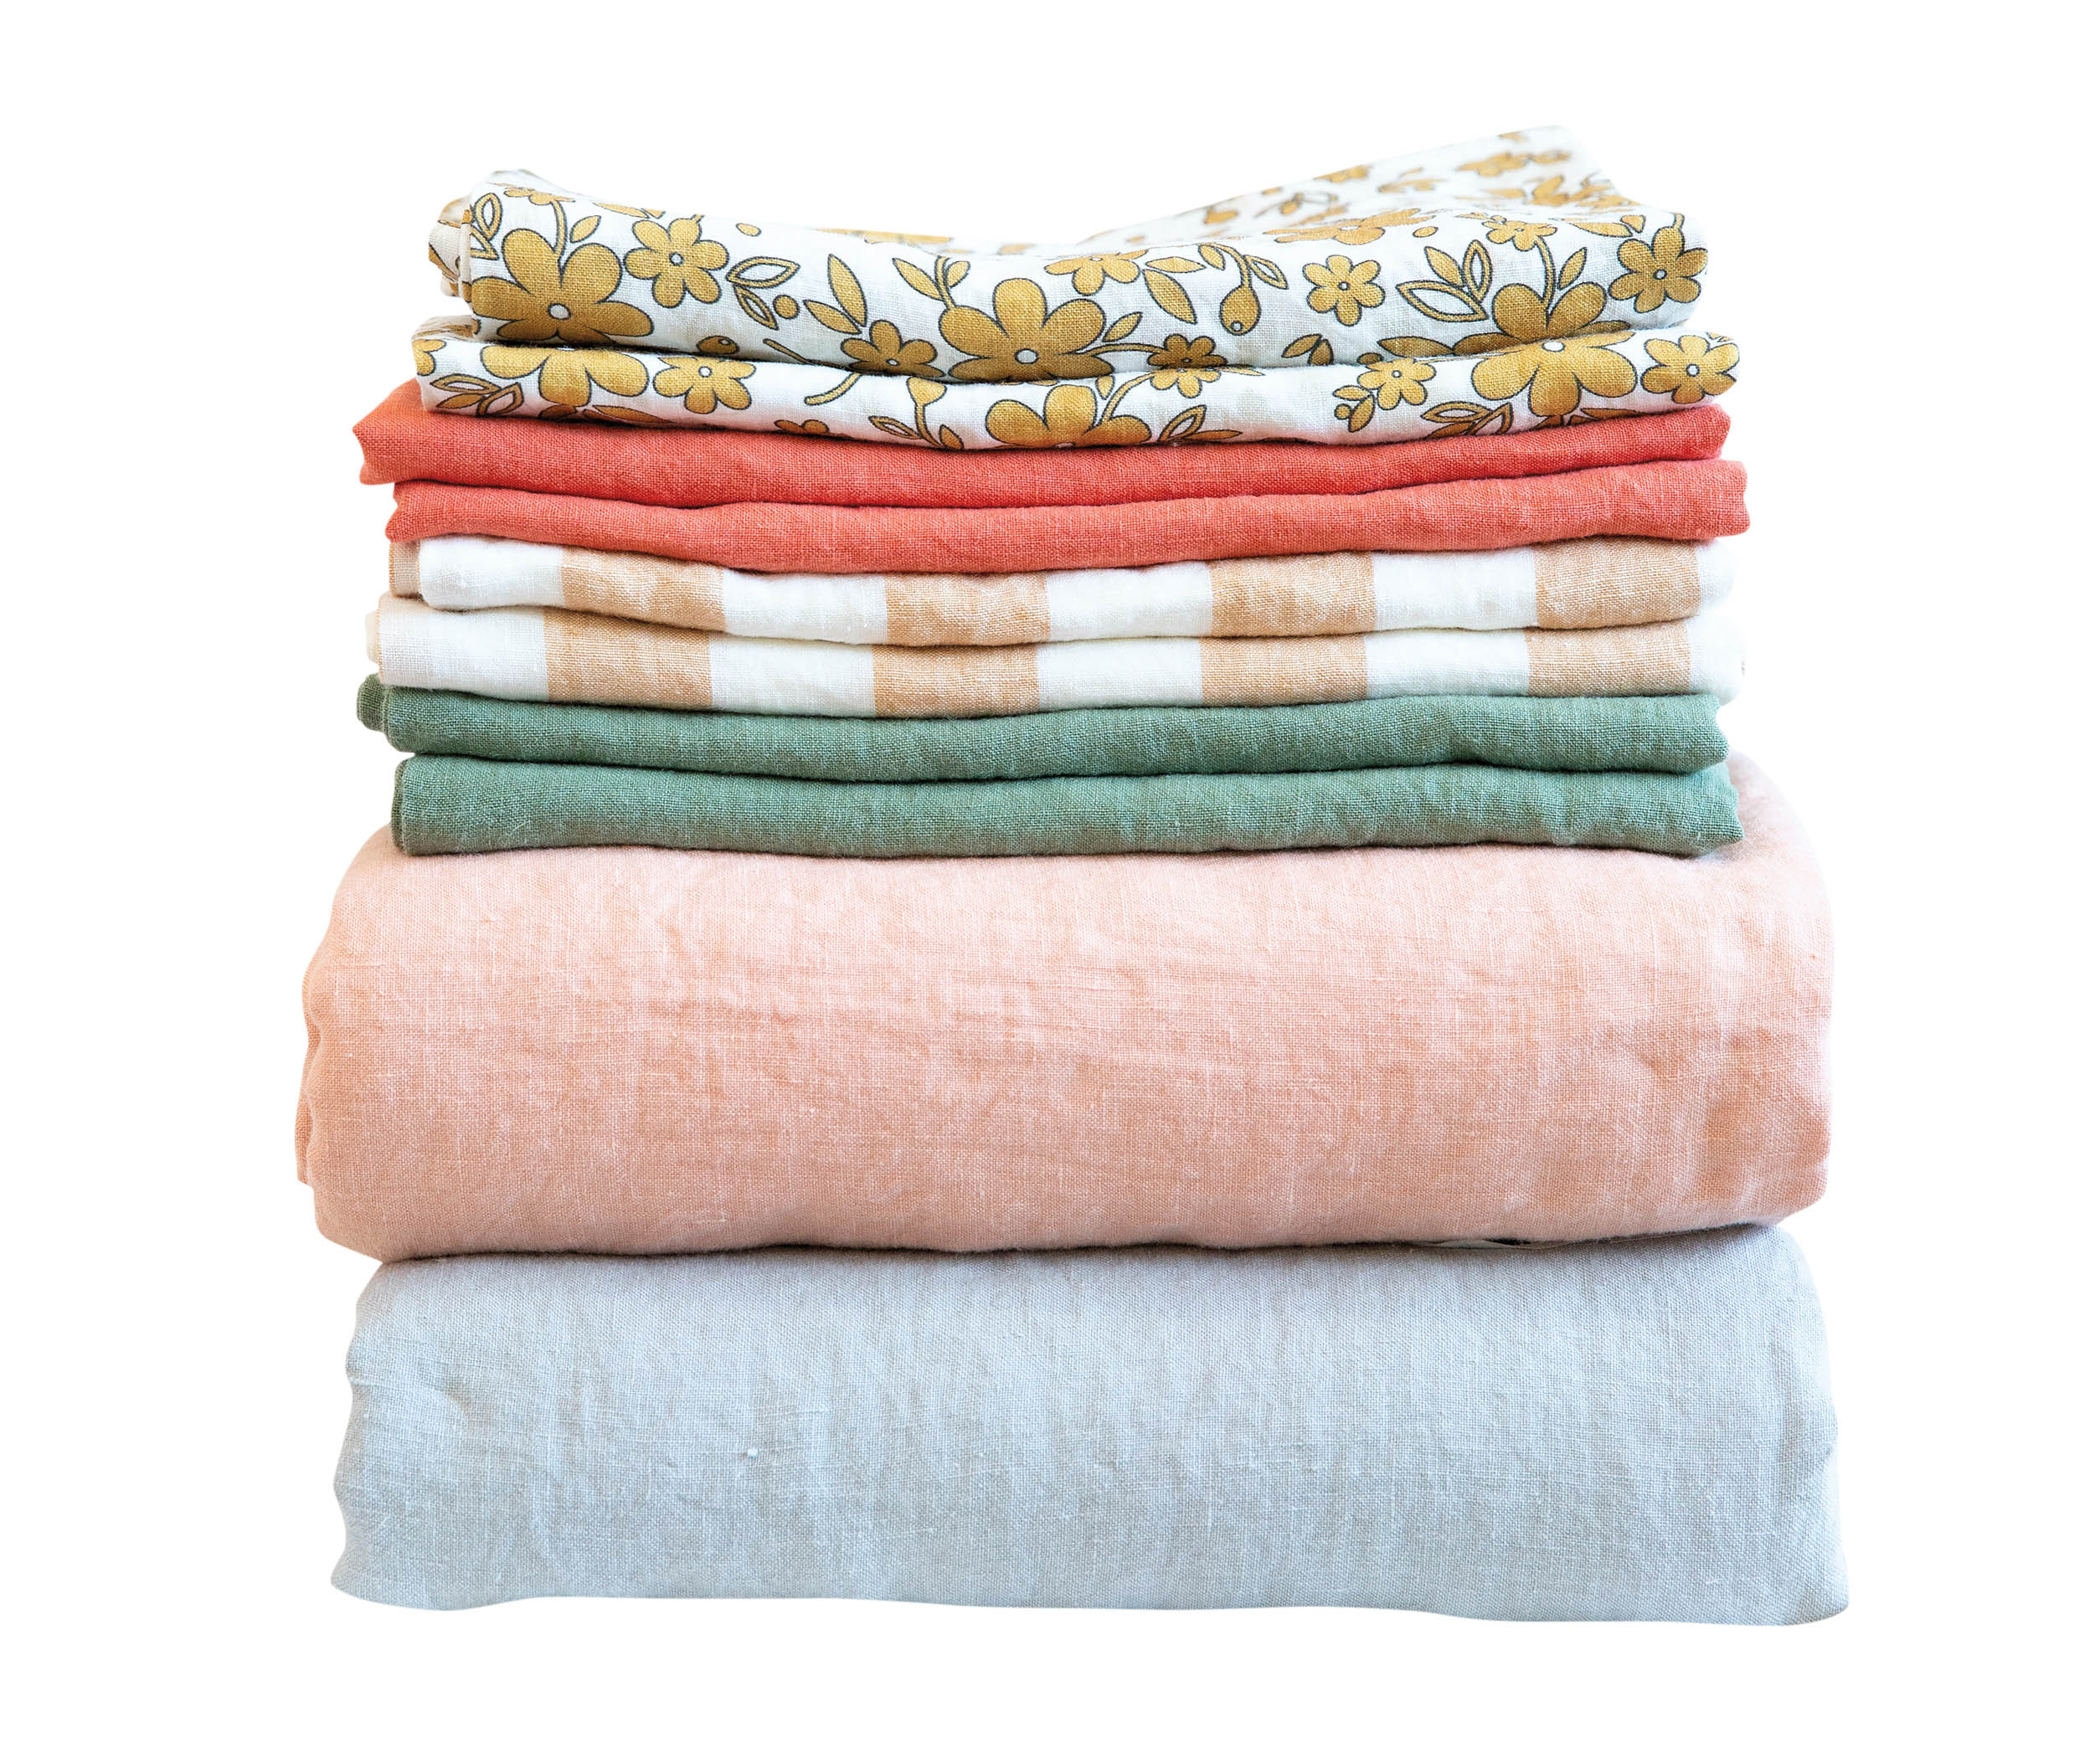 stack of colorful linens